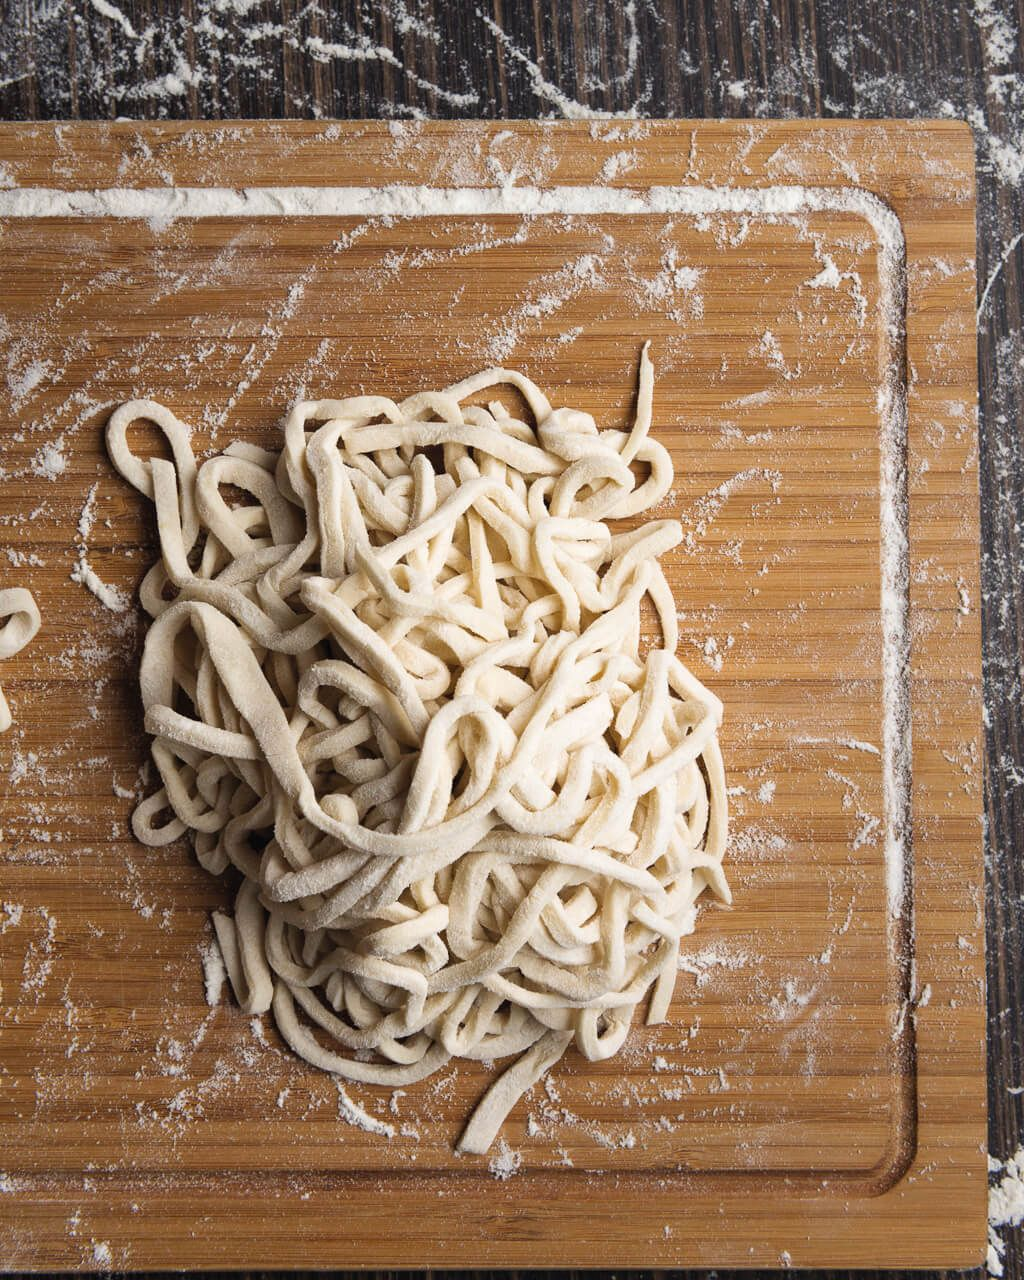 How To Make Udon Noodles Recipe From Iron Chef Morimoto Recipe Udon Noodles Homemade Udon Noodles Recipe Udon Noodles Recipe